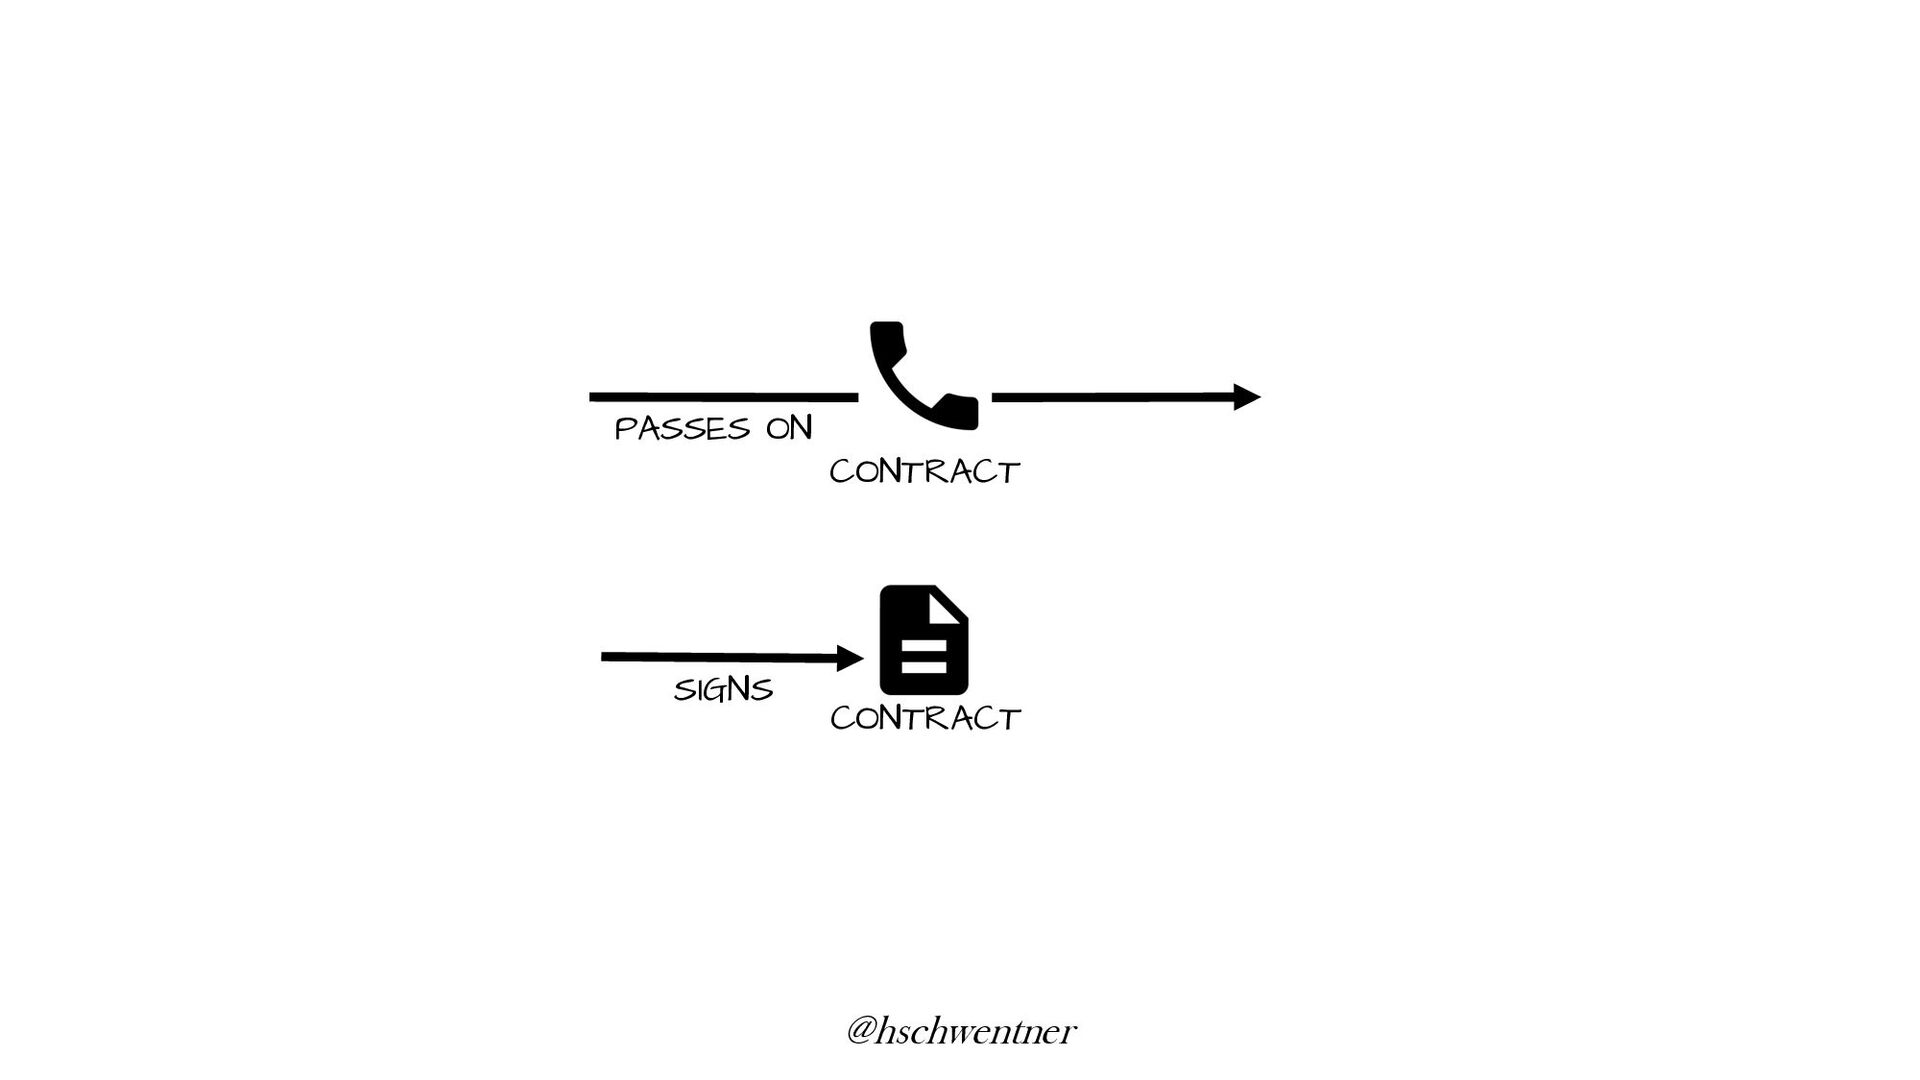 ACTORS ONCE/WORK OBJECTS SEVERAL TIMES SIGNS 4 ...